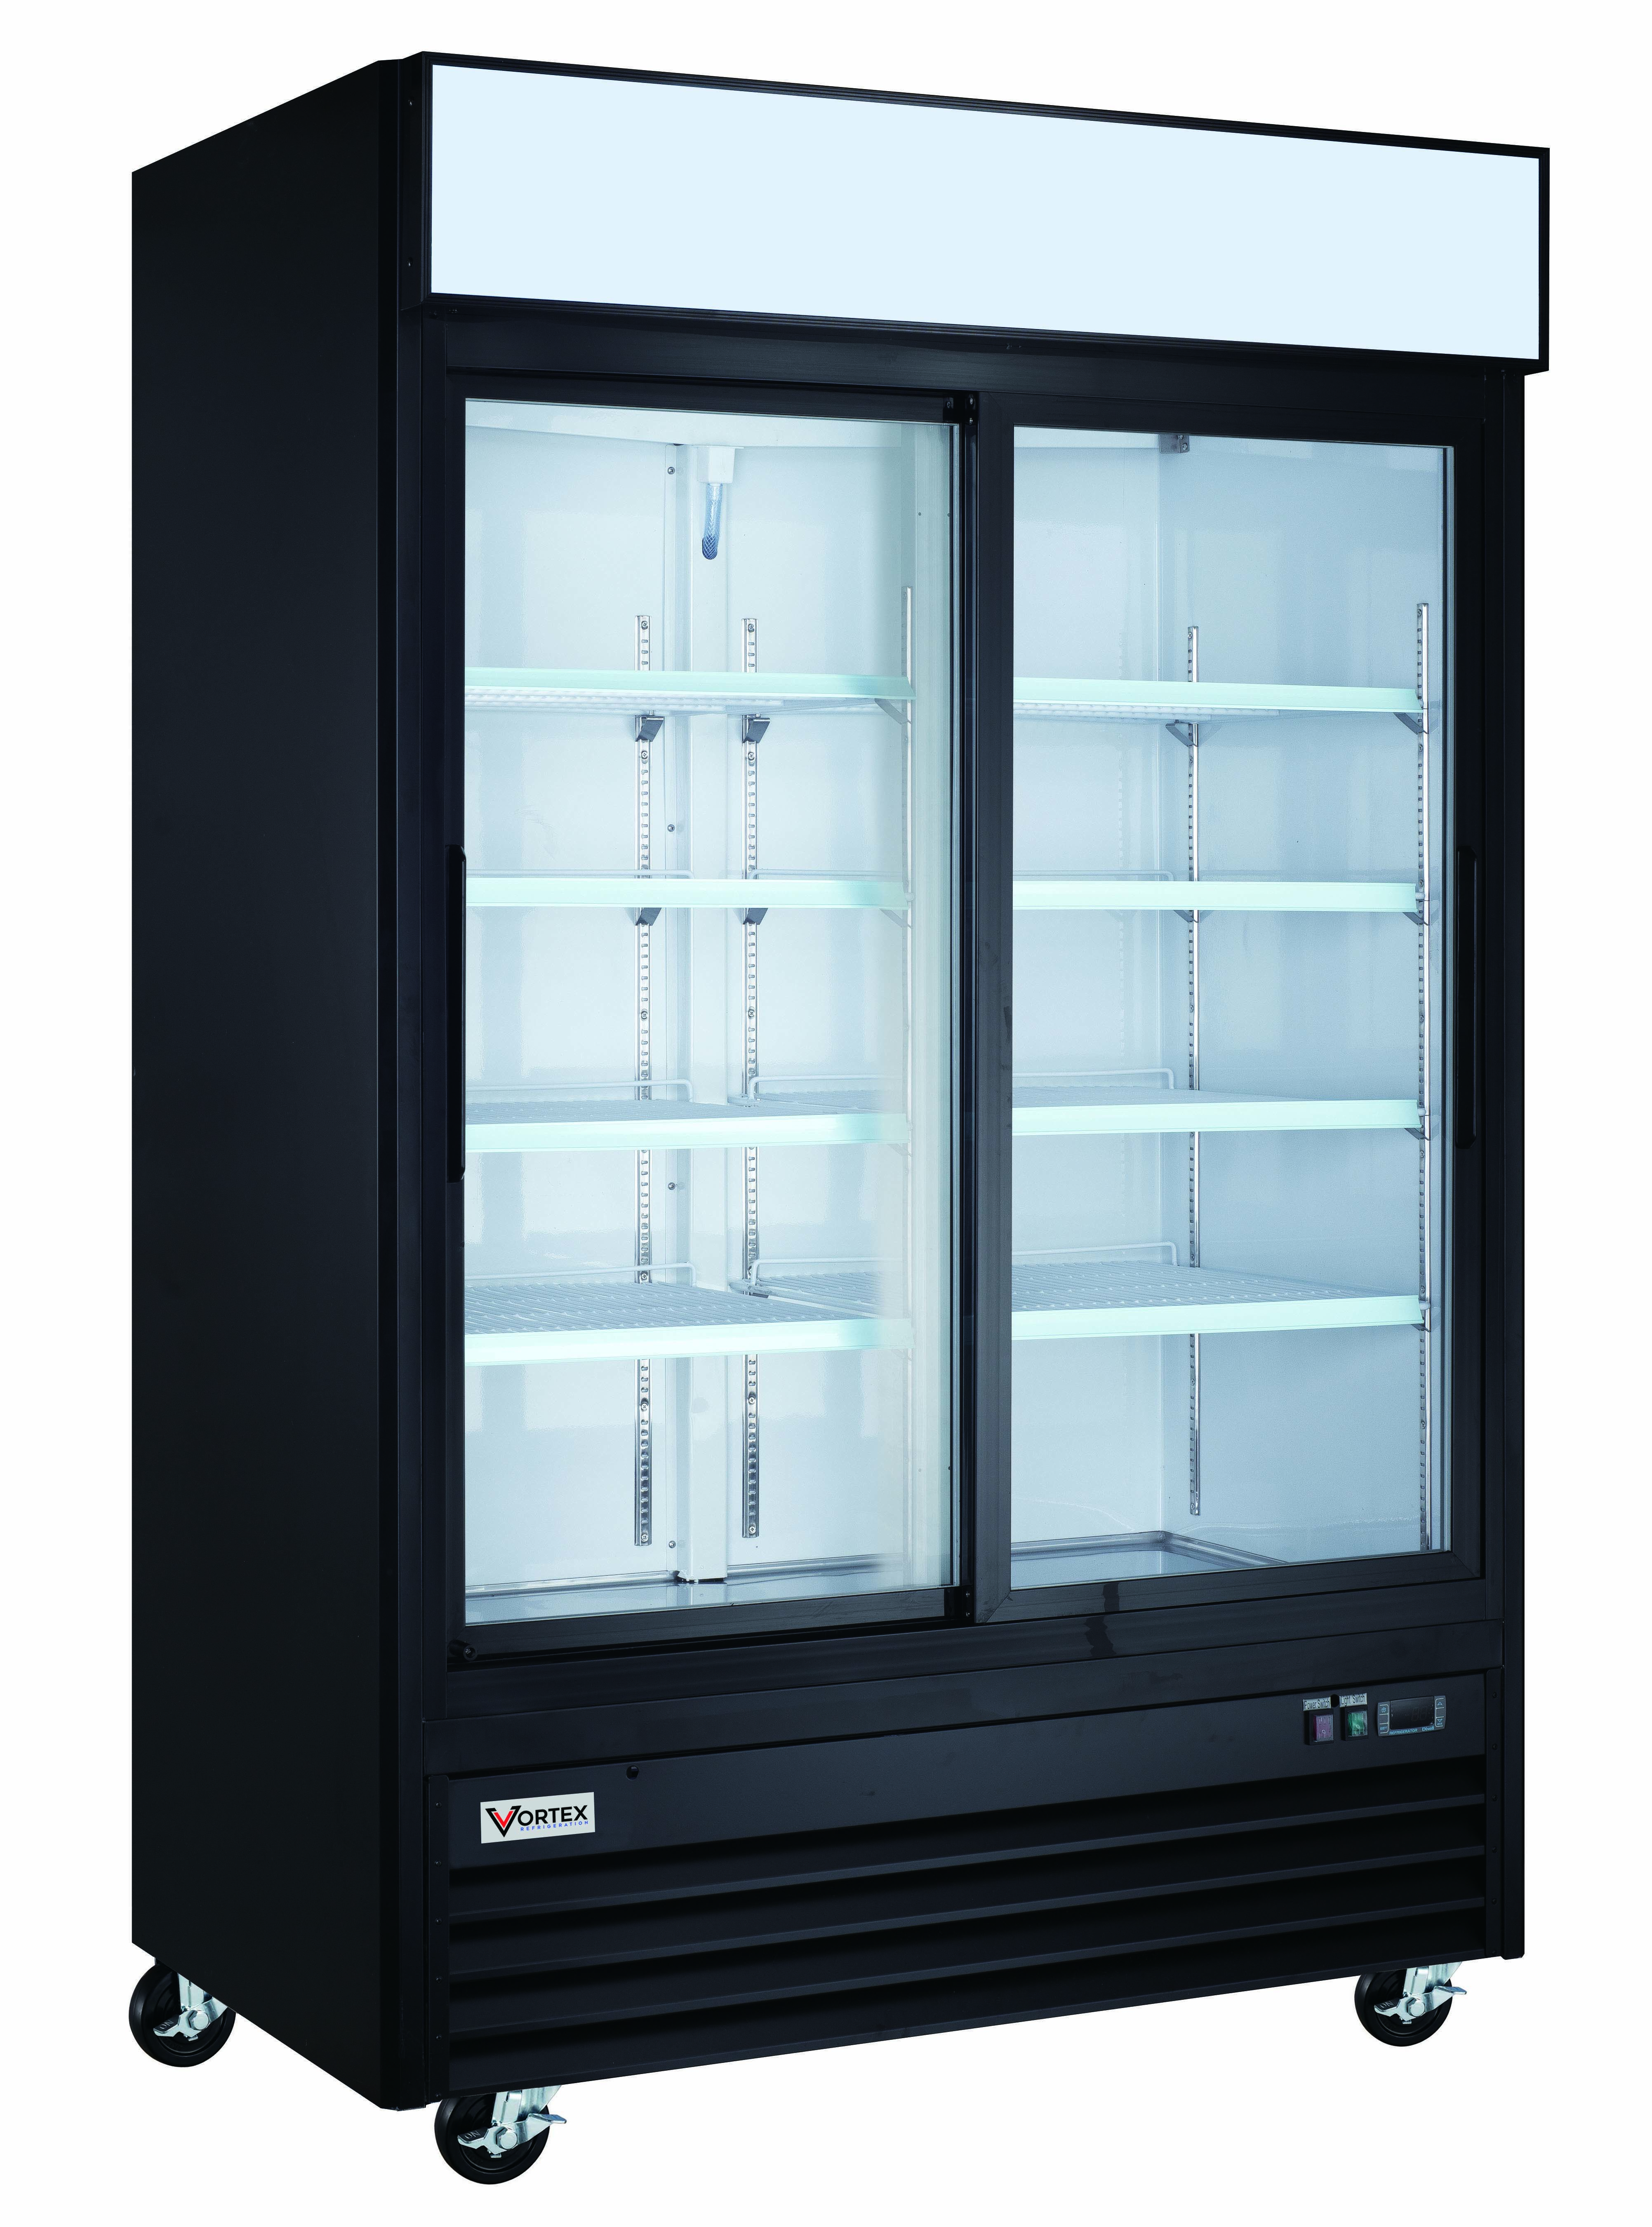 Vortex 2 Sliding Glass Door Merchandiser Refrigerator V